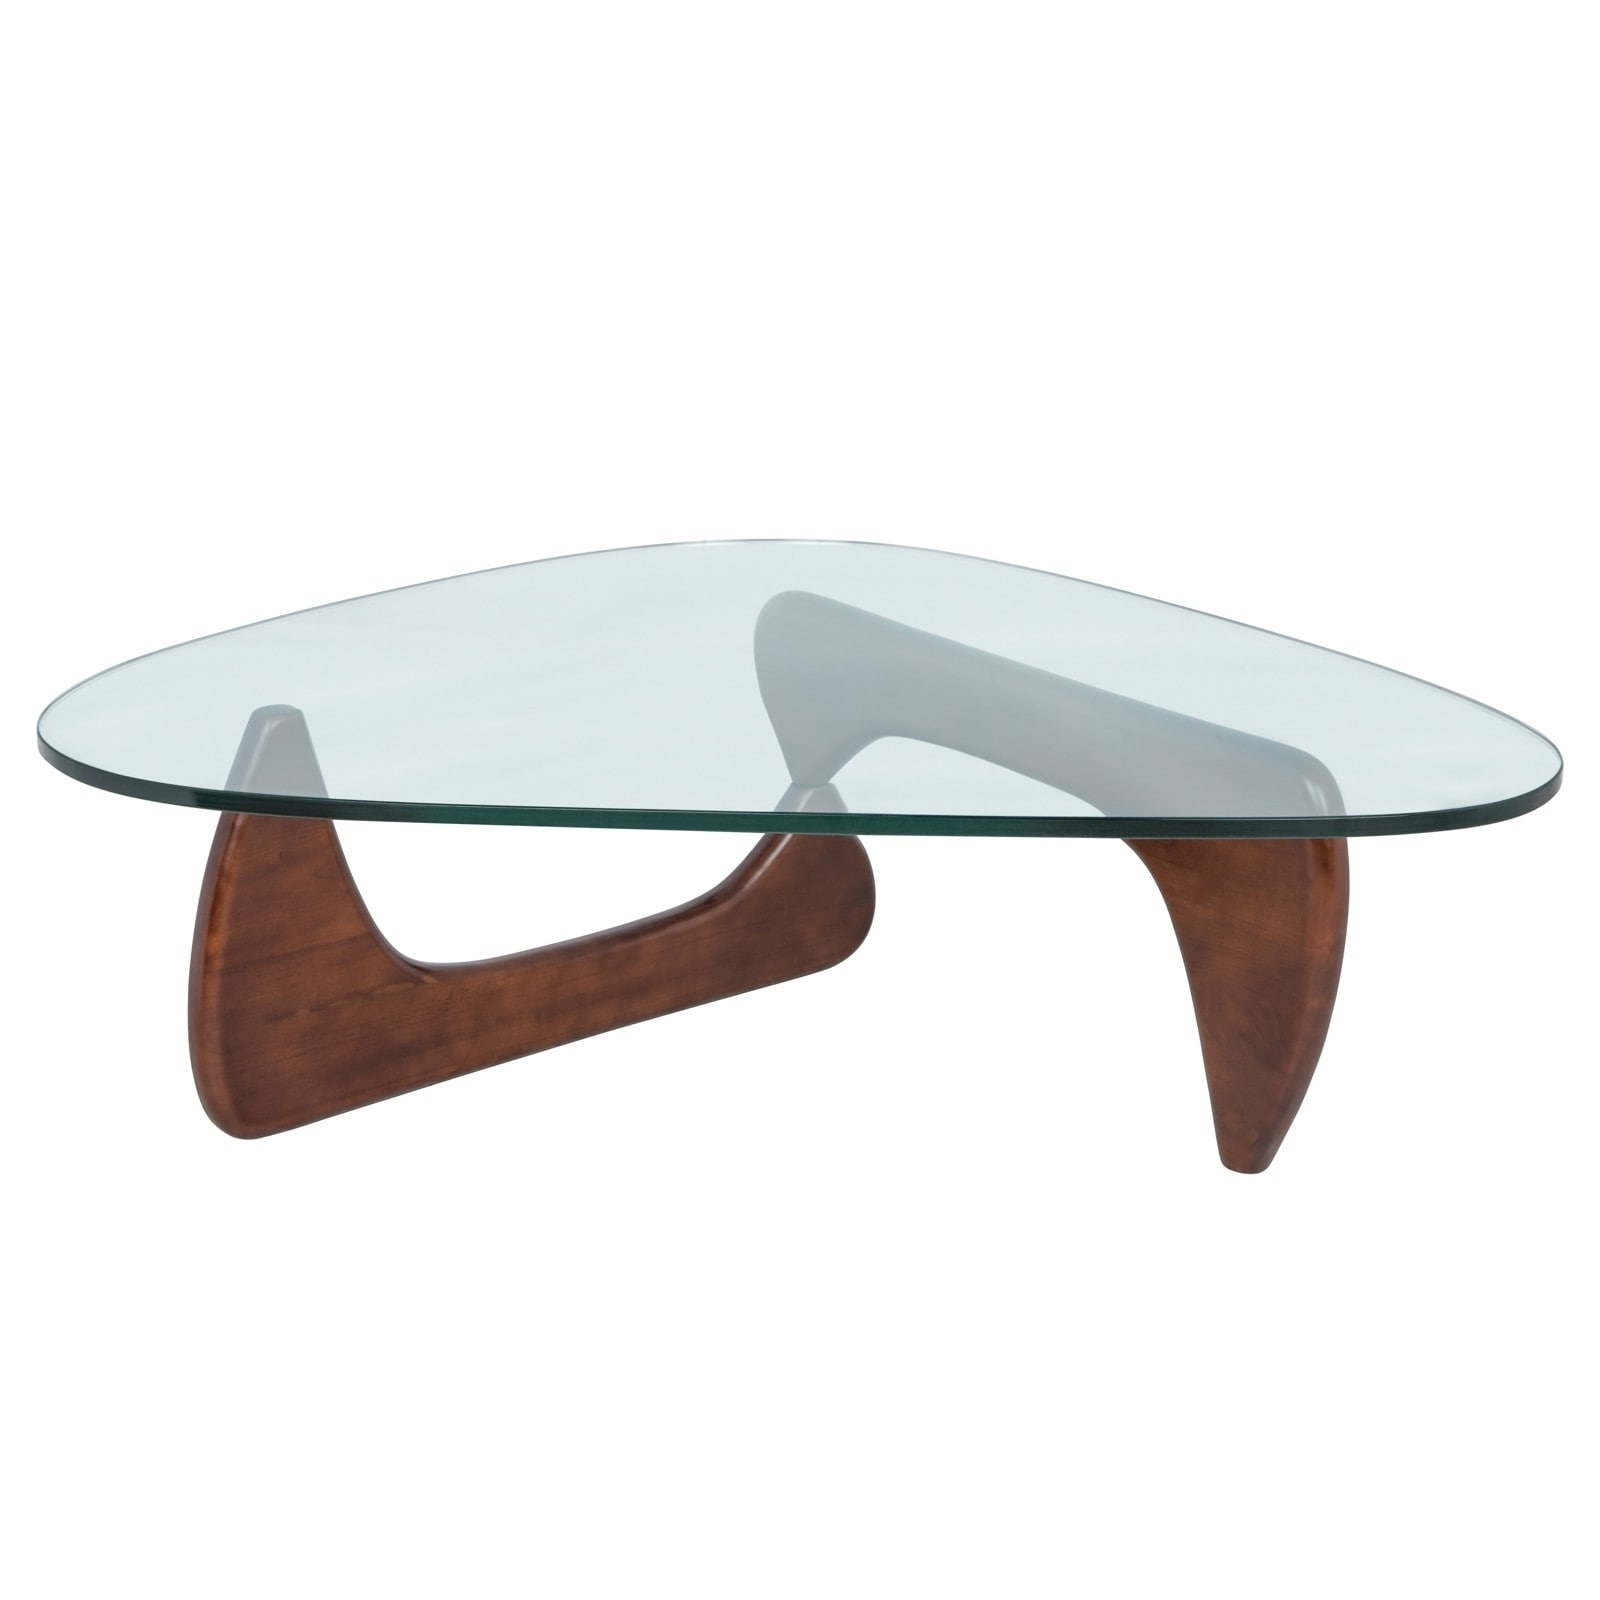 Shop leisuremod imperial triangle coffee table with walnut wood base free shipping today overstock com 10470110